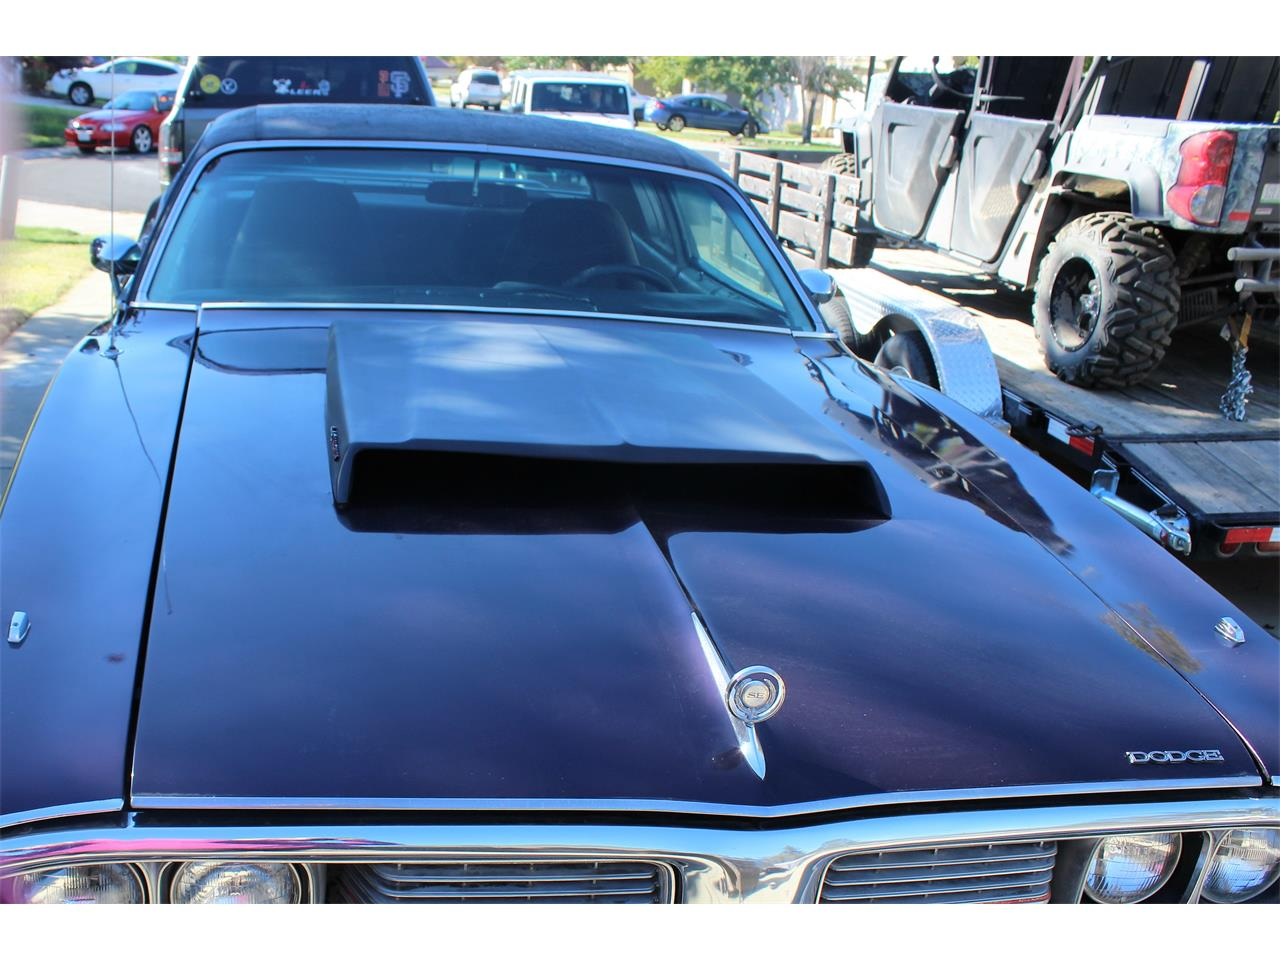 Large Picture of '74 Dodge Charger - $13,500.00 Offered by a Private Seller - J8HA